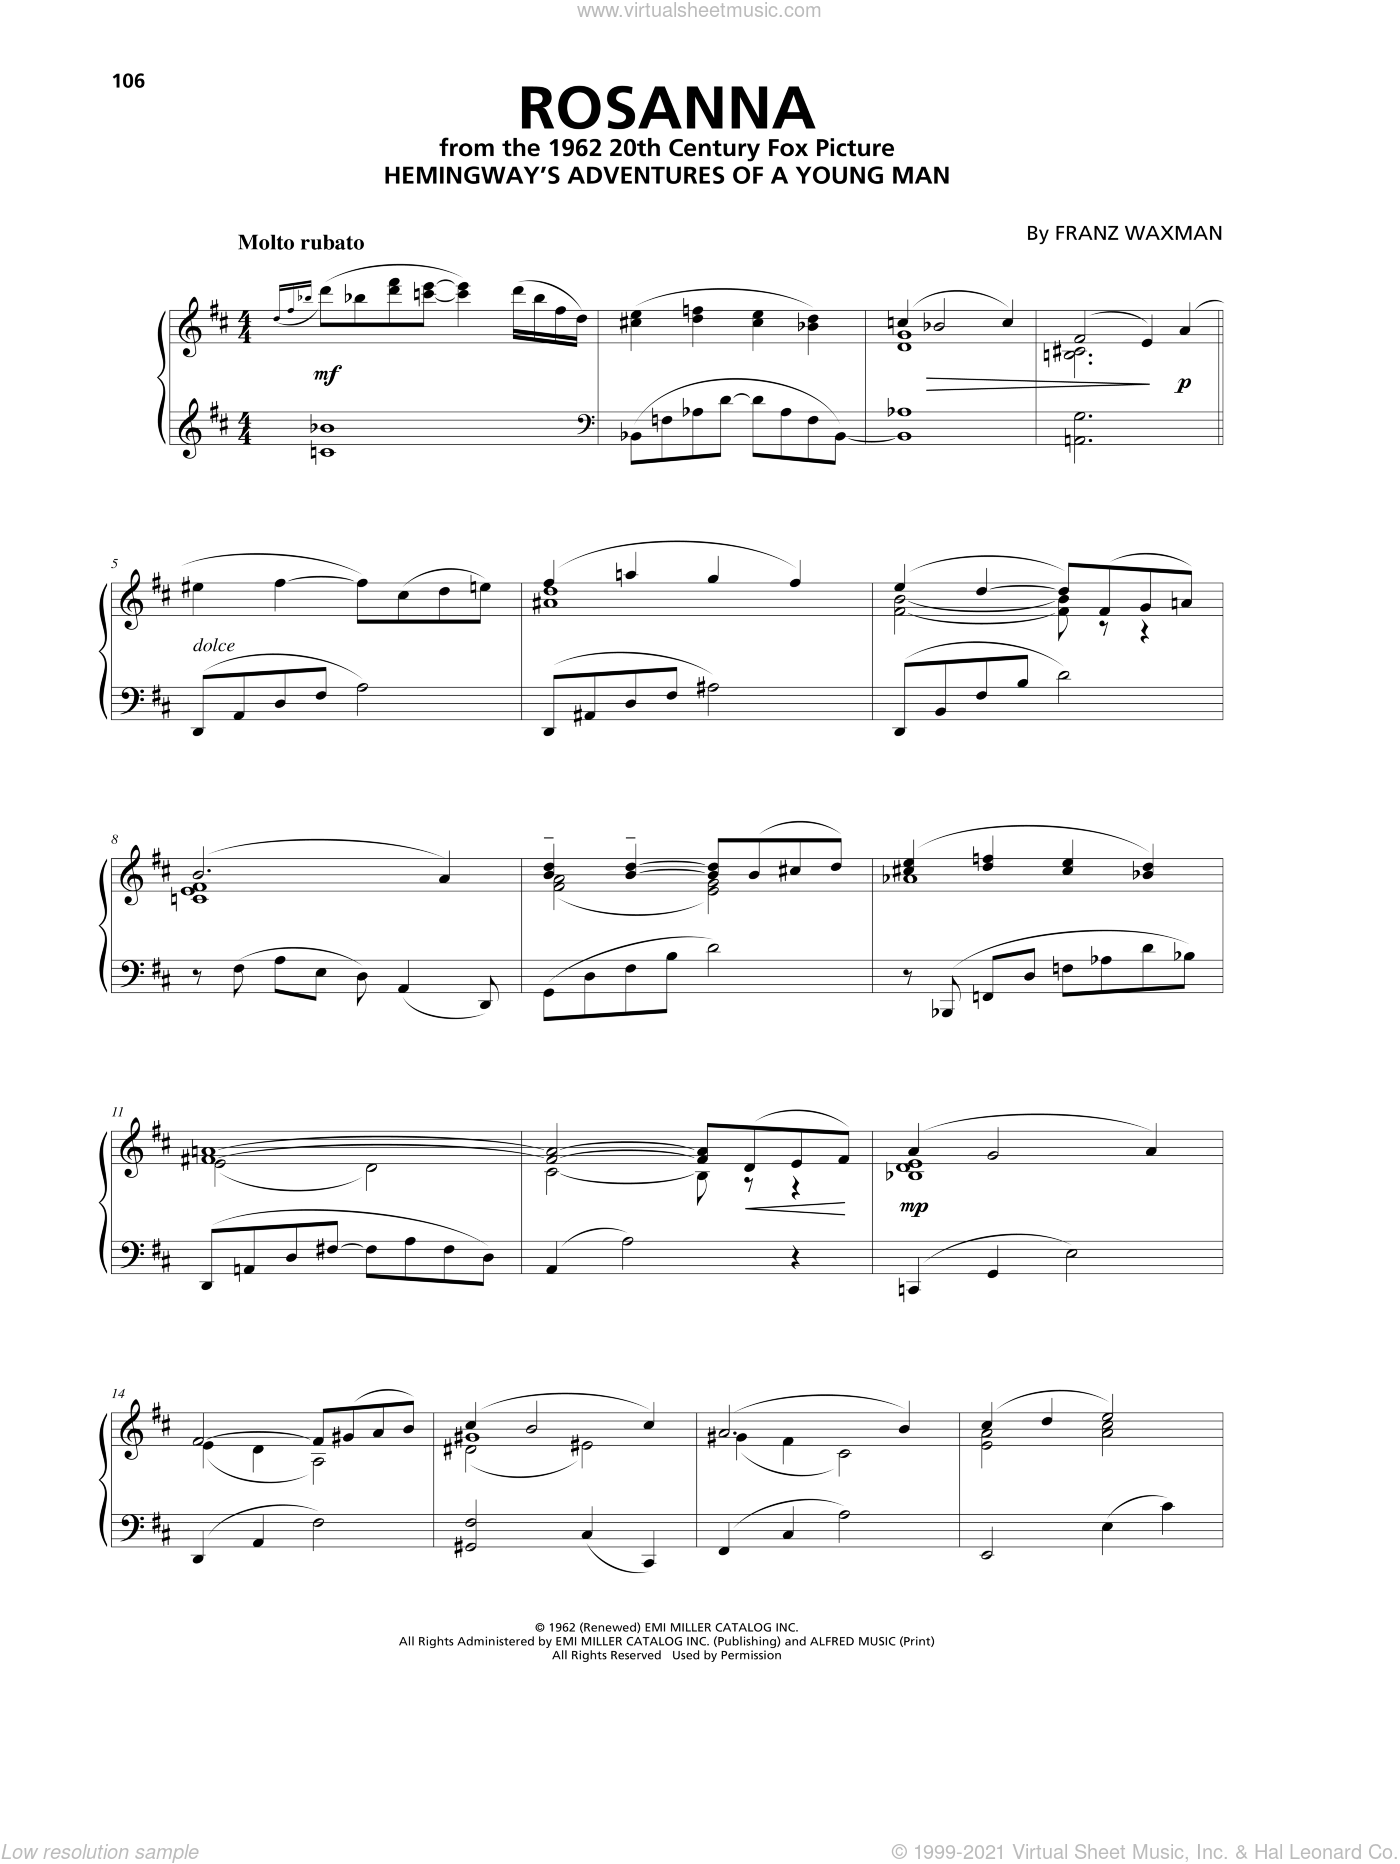 Rosanna sheet music for piano solo by Franz Waxman, intermediate skill level